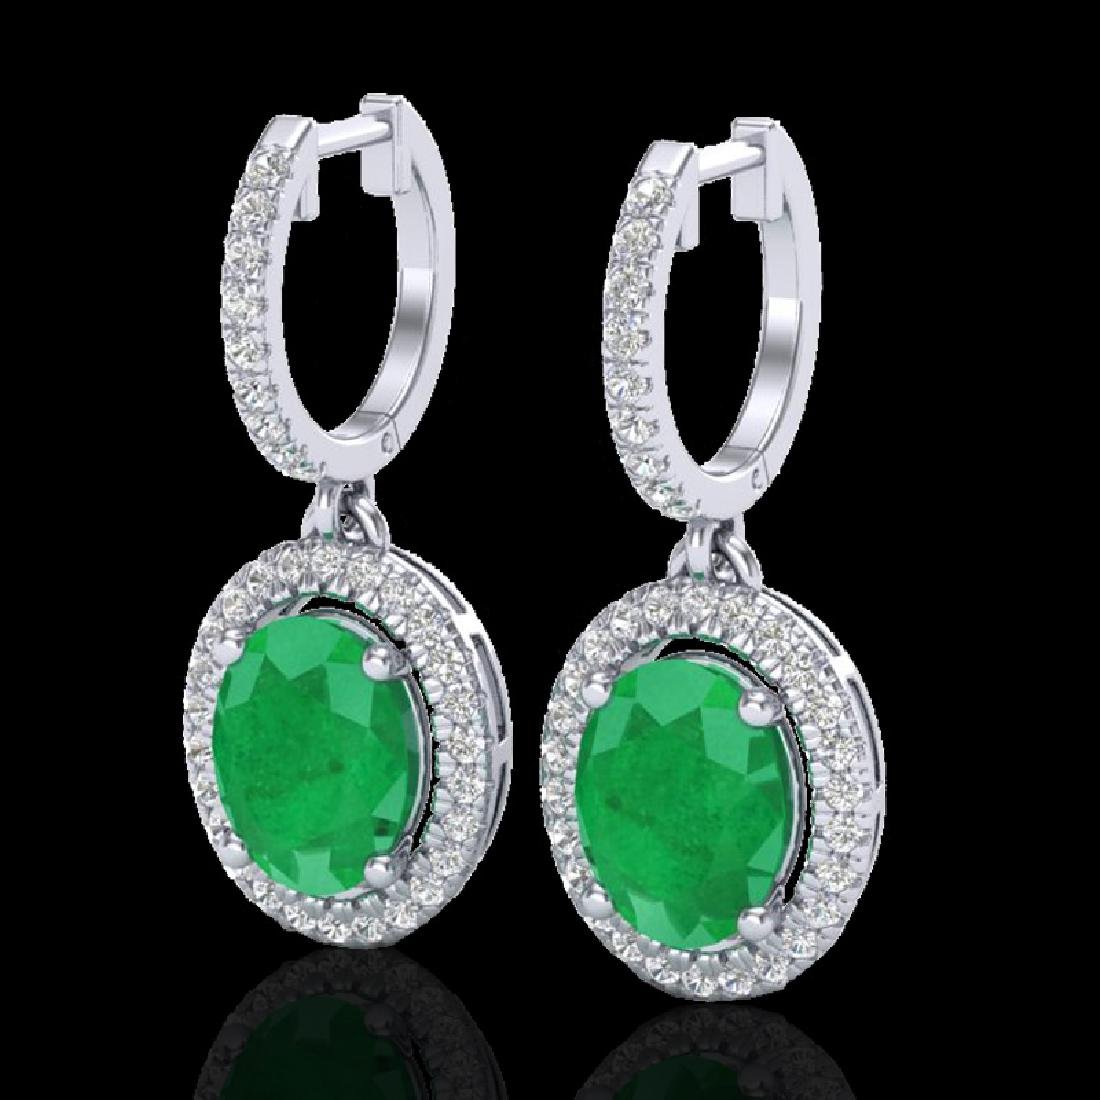 4.25 CTW Emerald & Micro Pave VS/SI Diamond Earrings